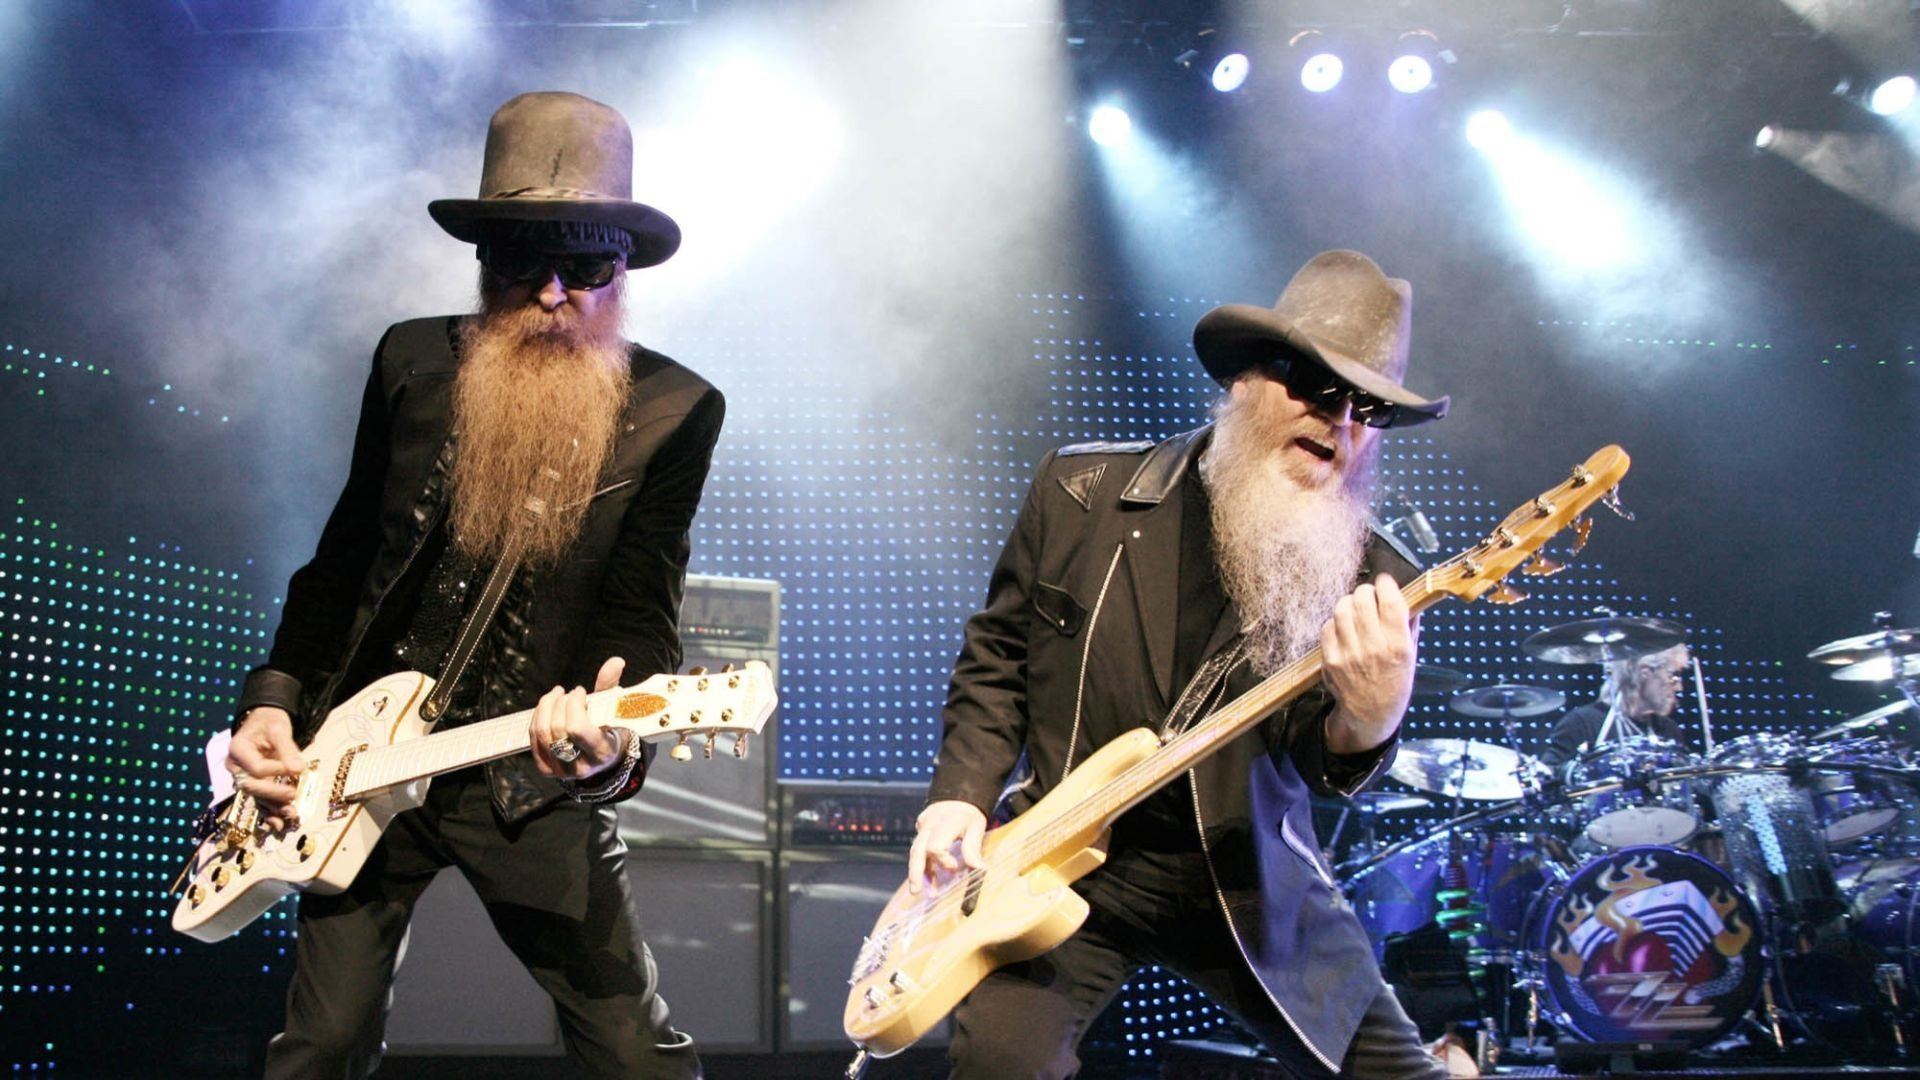 Zz top full hd wallpaper and background image 1920x1080 id 263150 - The grange zz top lyrics ...